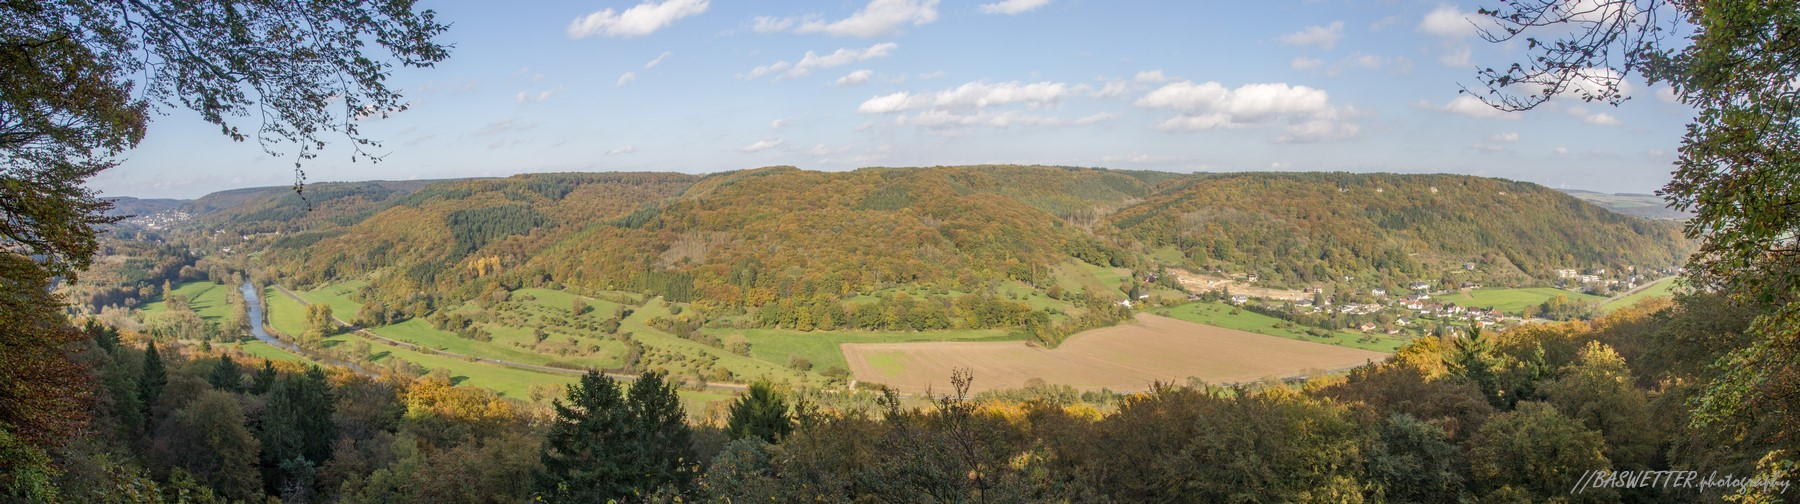 Herfst panorama langs de Mullerthal trail in Luxemburg